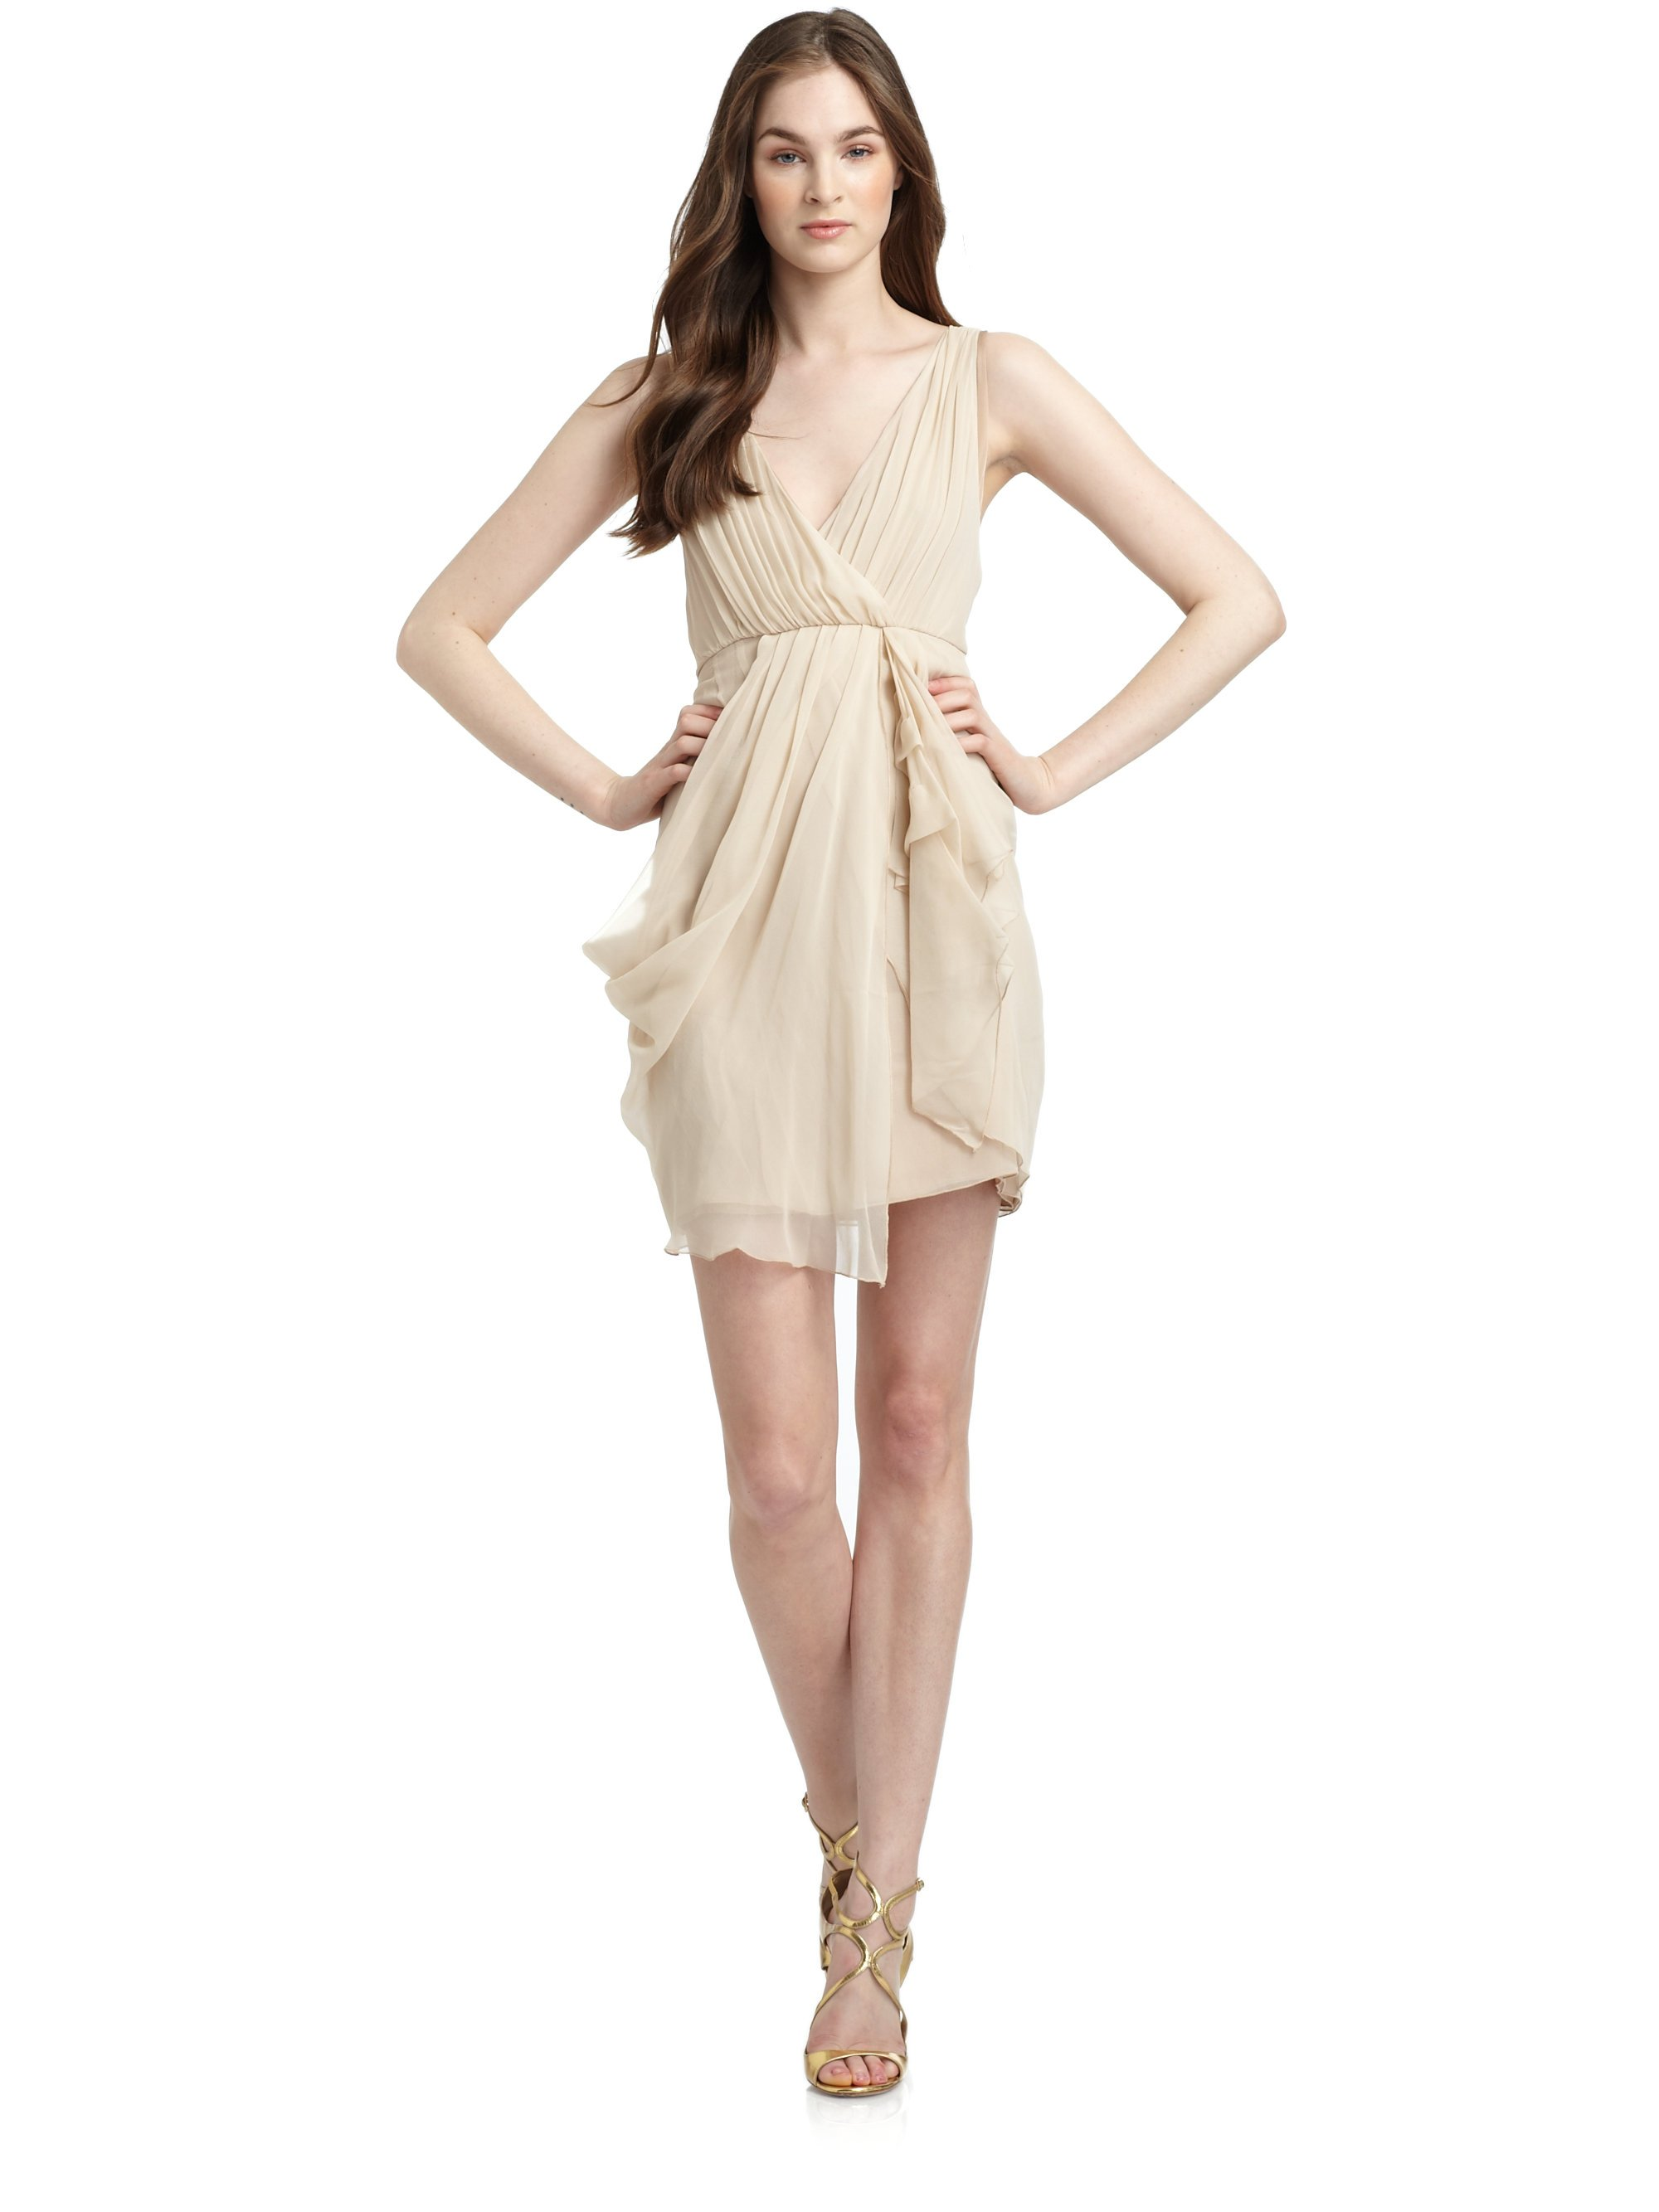 Lyst - Alice + Olivia Silk Chiffon Draped Cocktail Dress in Natural